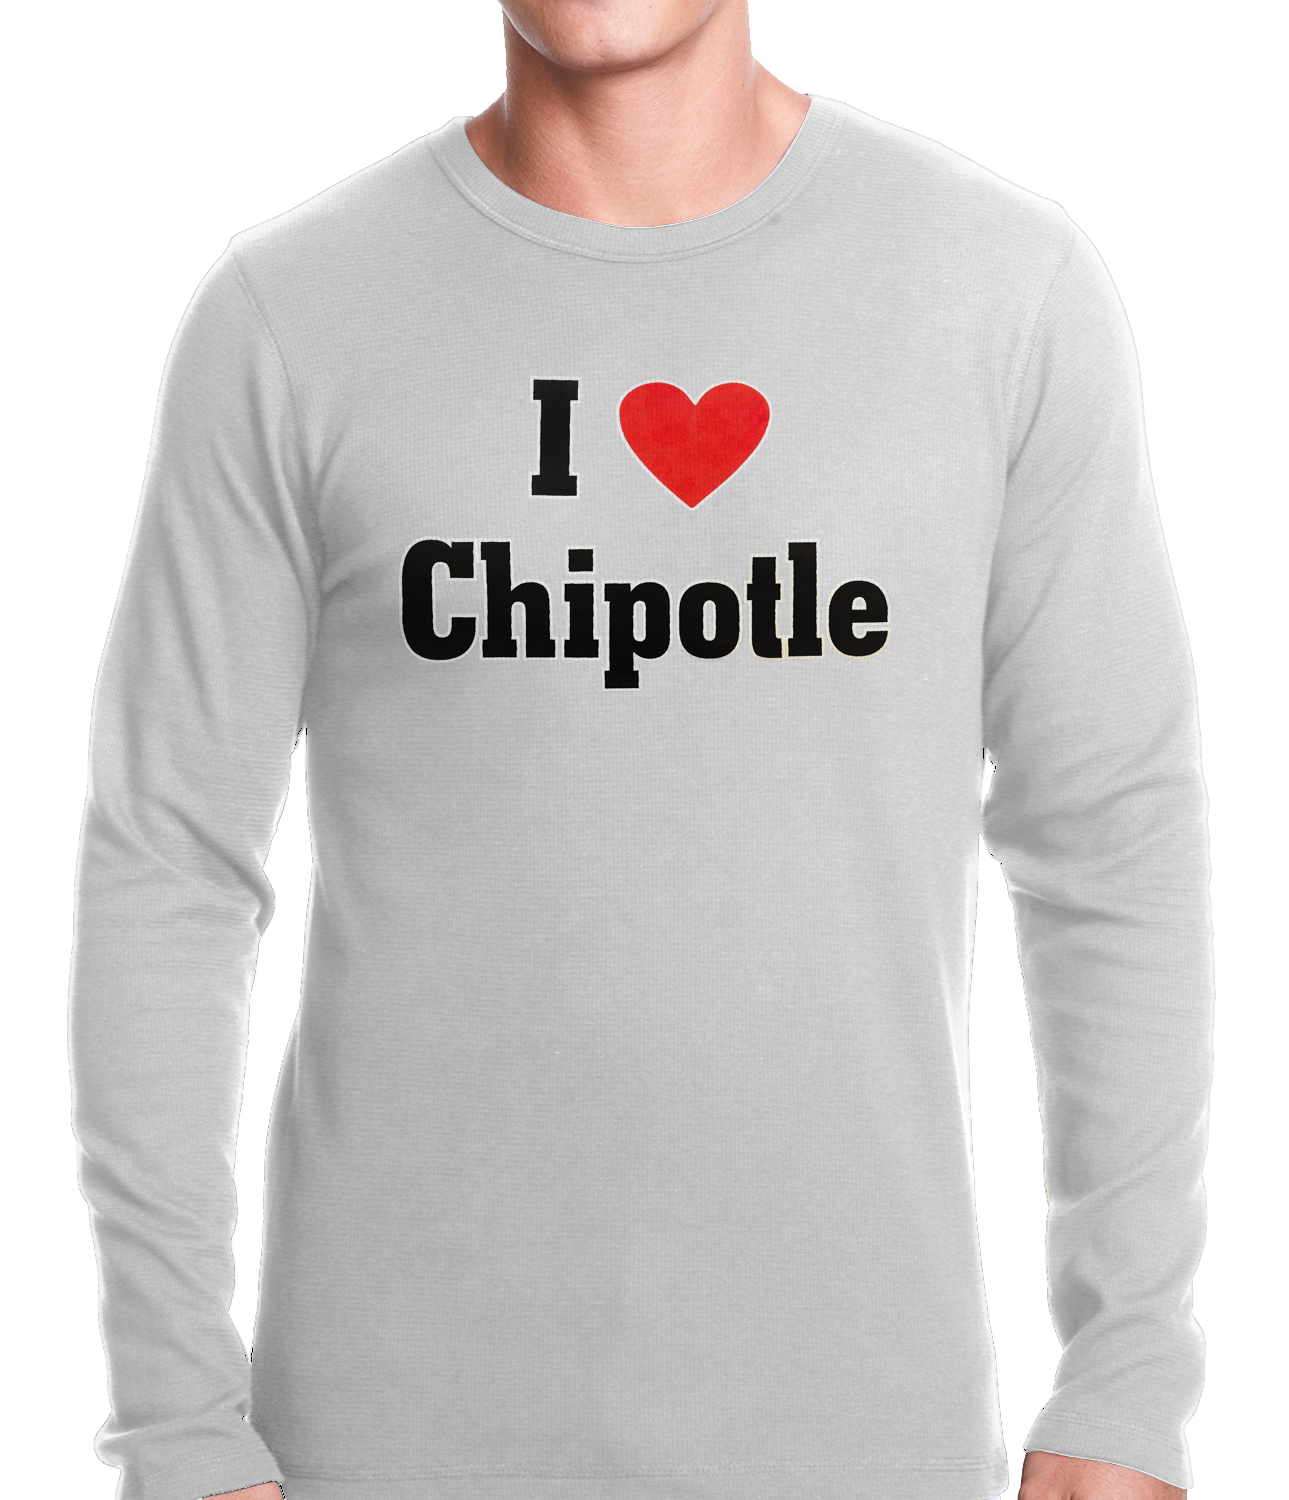 5 Funny Mens Shirts More Tempting Than Chipotle